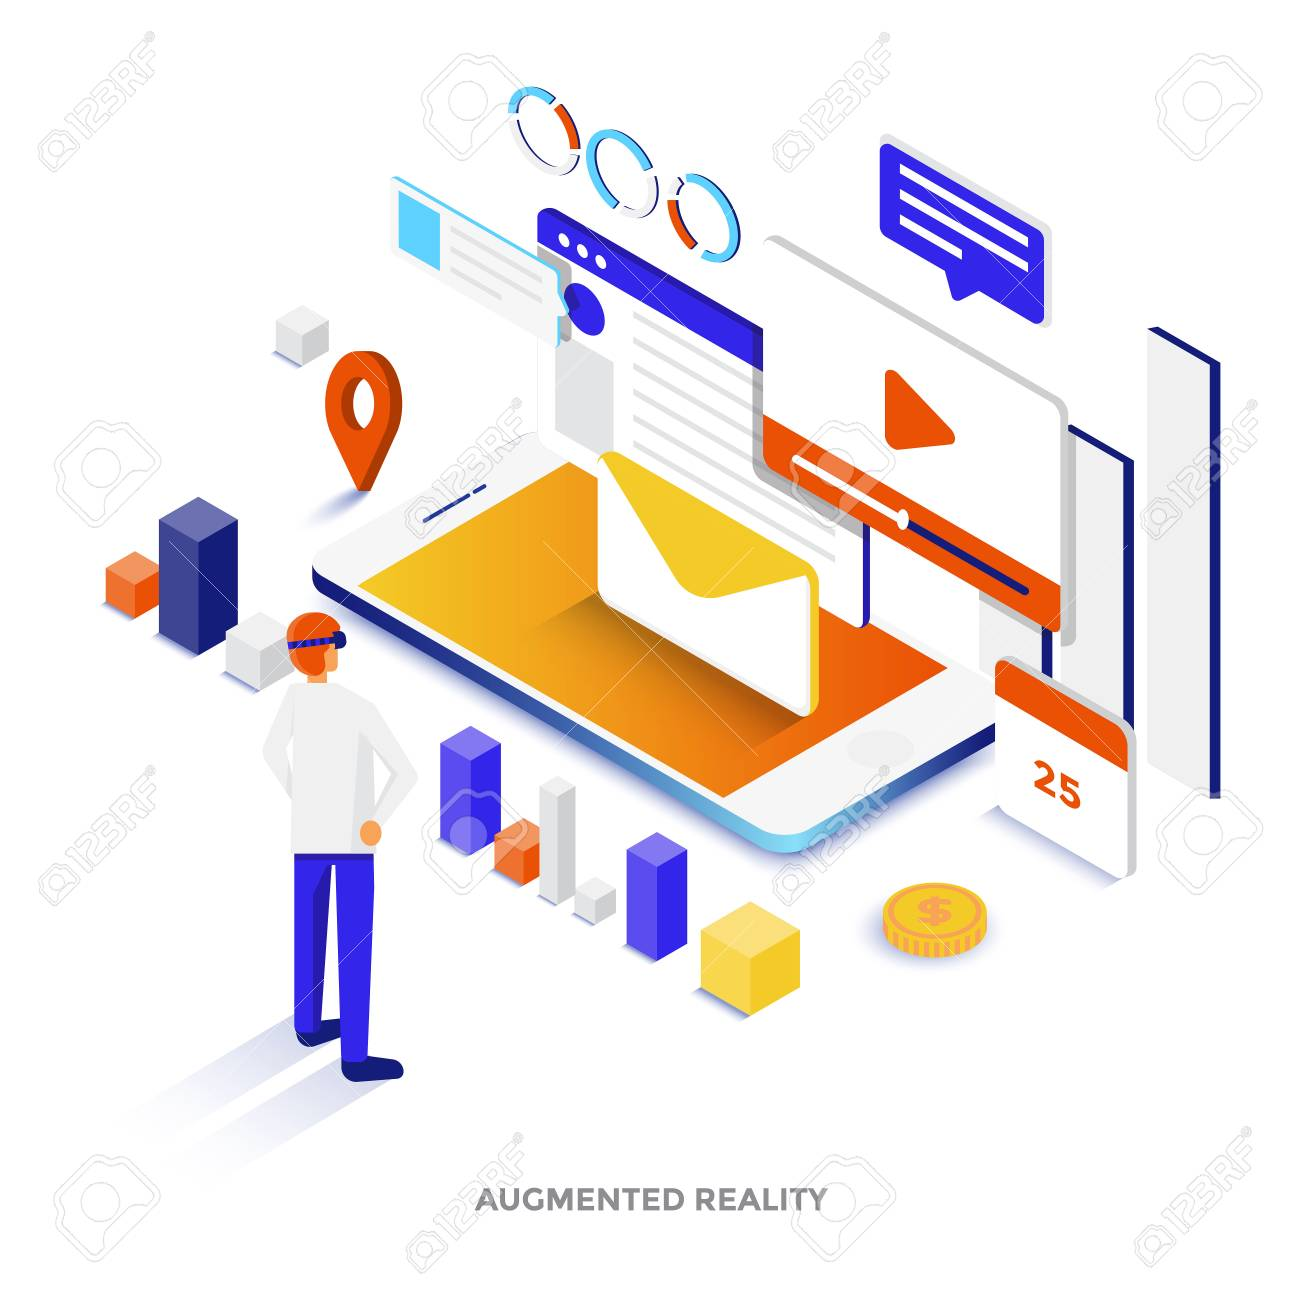 Modern flat design isometric illustration of Augmented reality Can